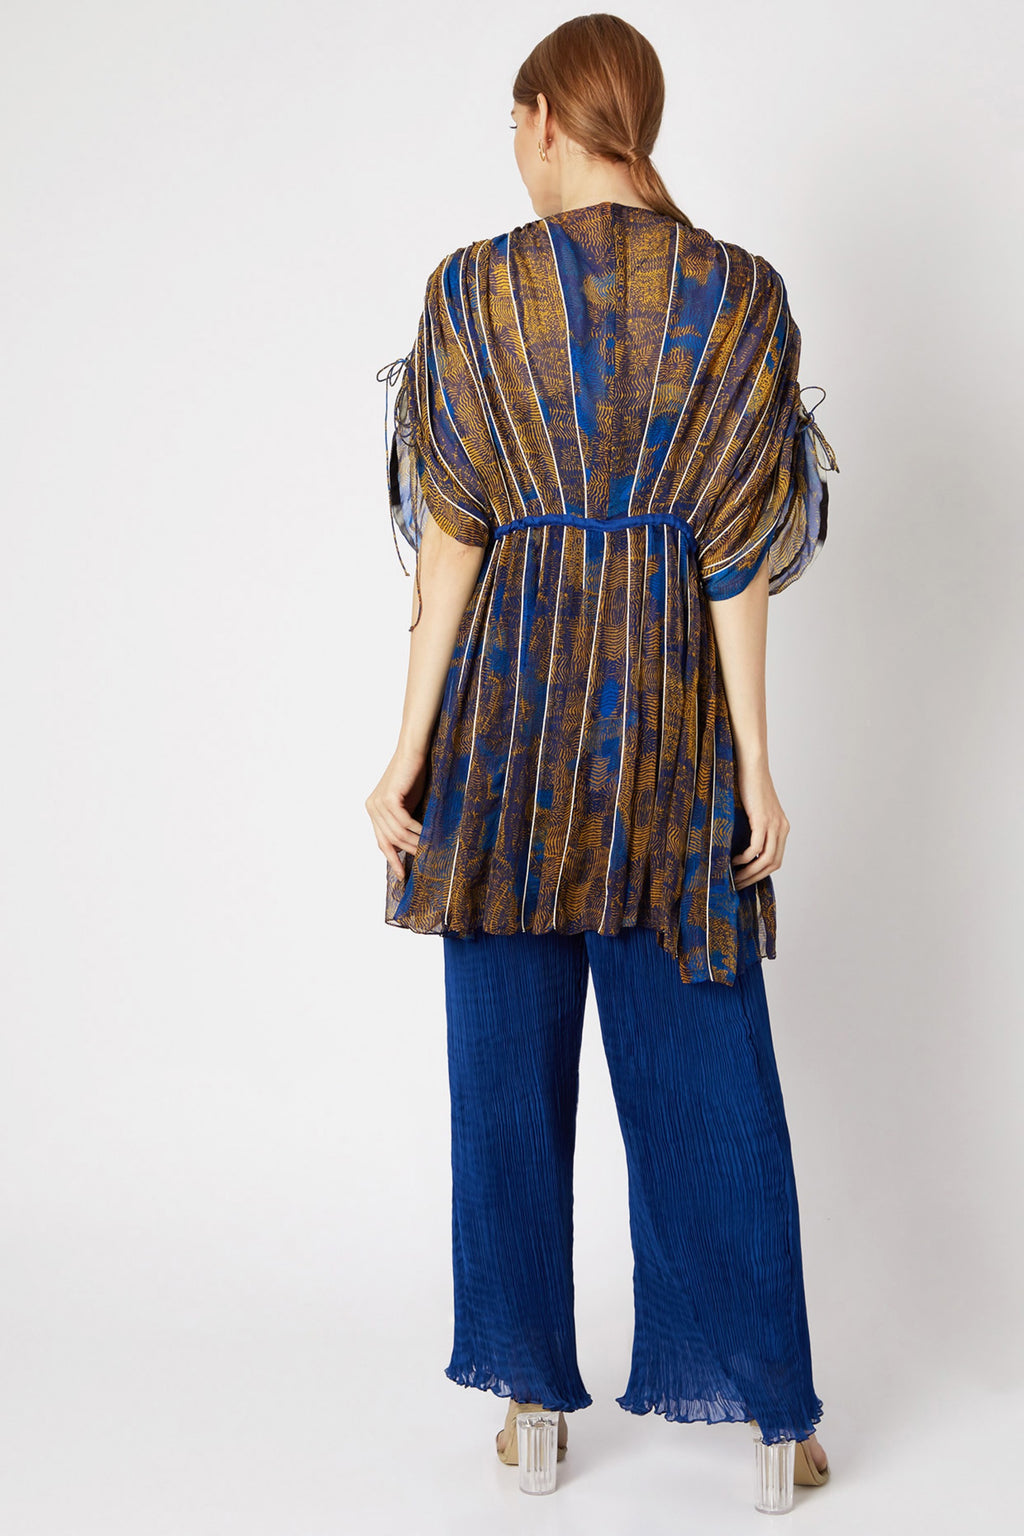 Saaksha & Kinni-Blue & Yellow Kaftan Dress-INDIASPOPUP.COM